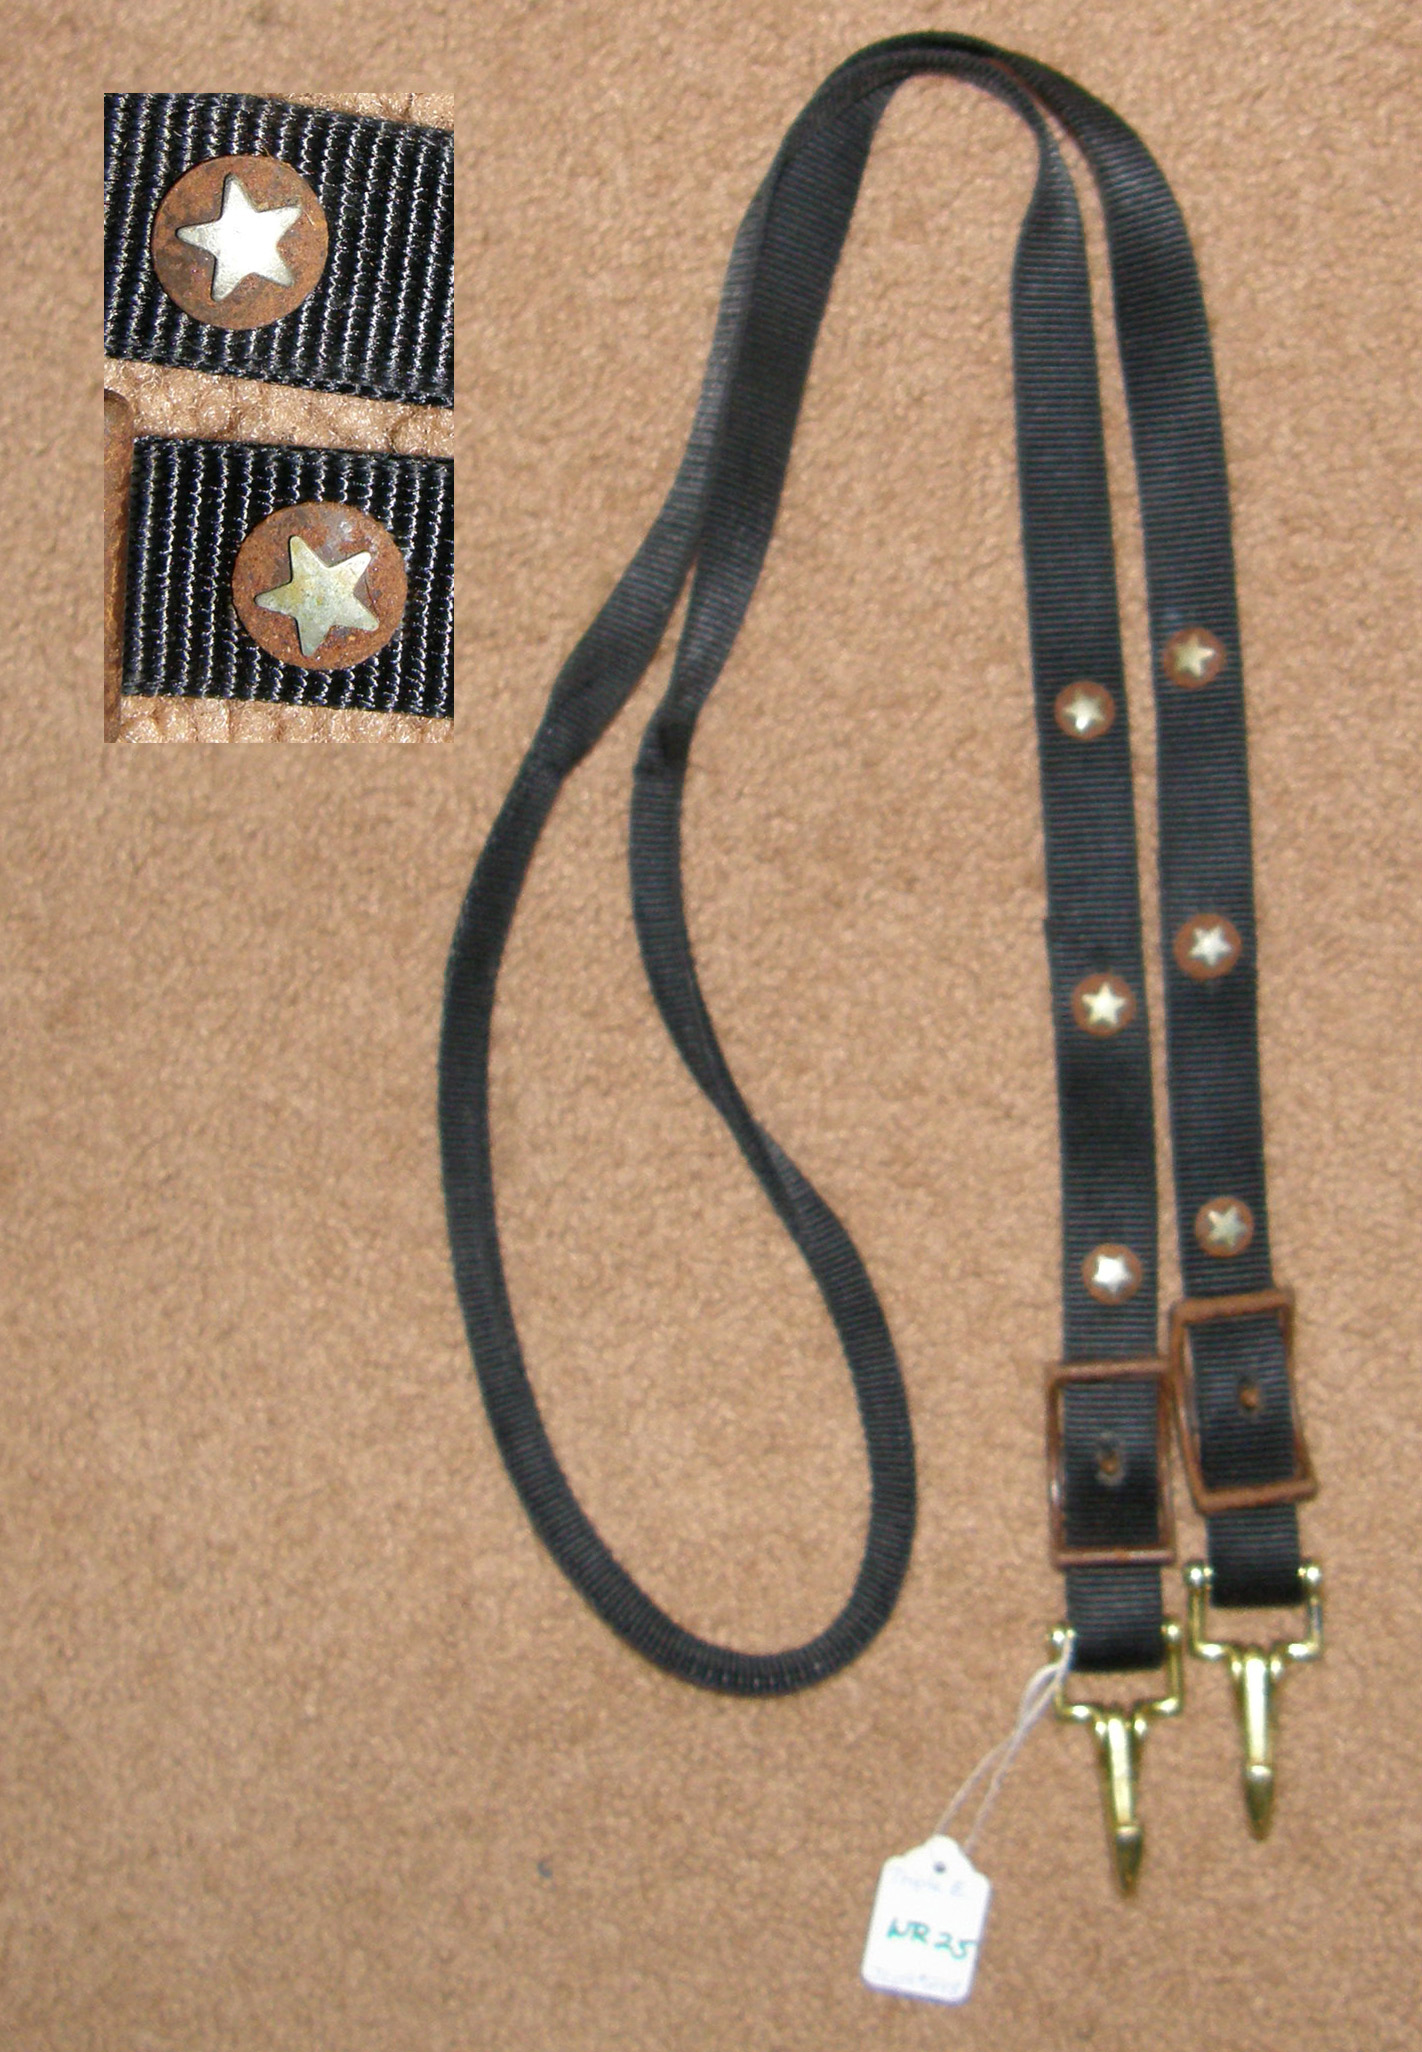 "Triple E Rolled Nylon Gaming Reins Roping Reins Western Reins Snap Ends Antique Brown Silver Star Conchos Black 1"" x 6 1/2'"